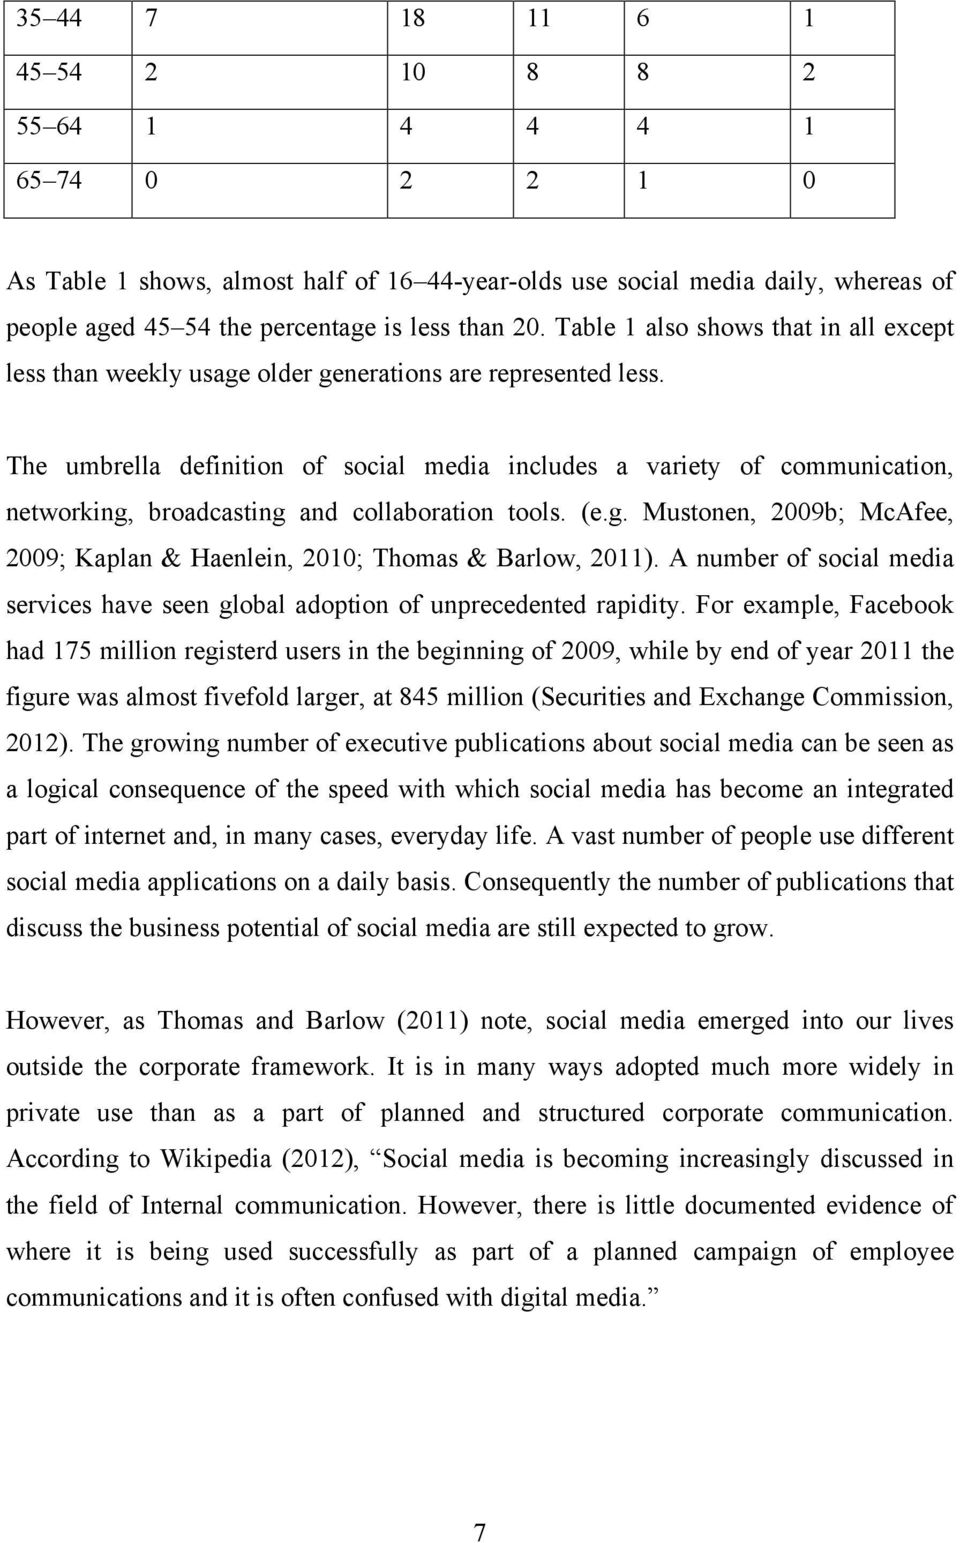 The umbrella definition of social media includes a variety of communication, networking, broadcasting and collaboration tools. (e.g. Mustonen, 2009b; McAfee, 2009; Kaplan & Haenlein, 2010; Thomas & Barlow, 2011).